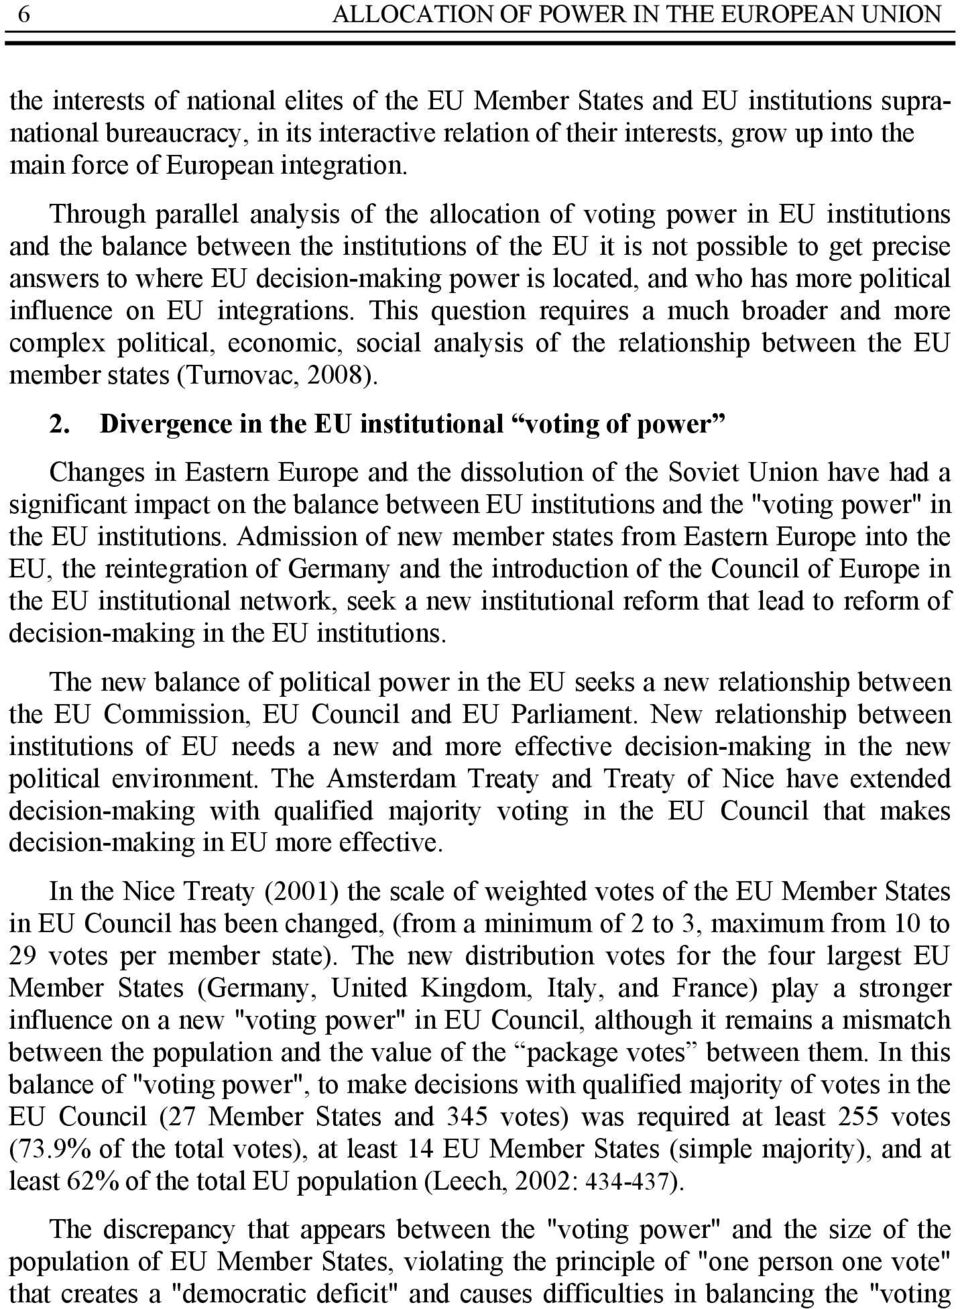 Through parallel analysis of the allocation of voting power in EU institutions and the balance between the institutions of the EU it is not possible to get precise answers to where EU decision-making